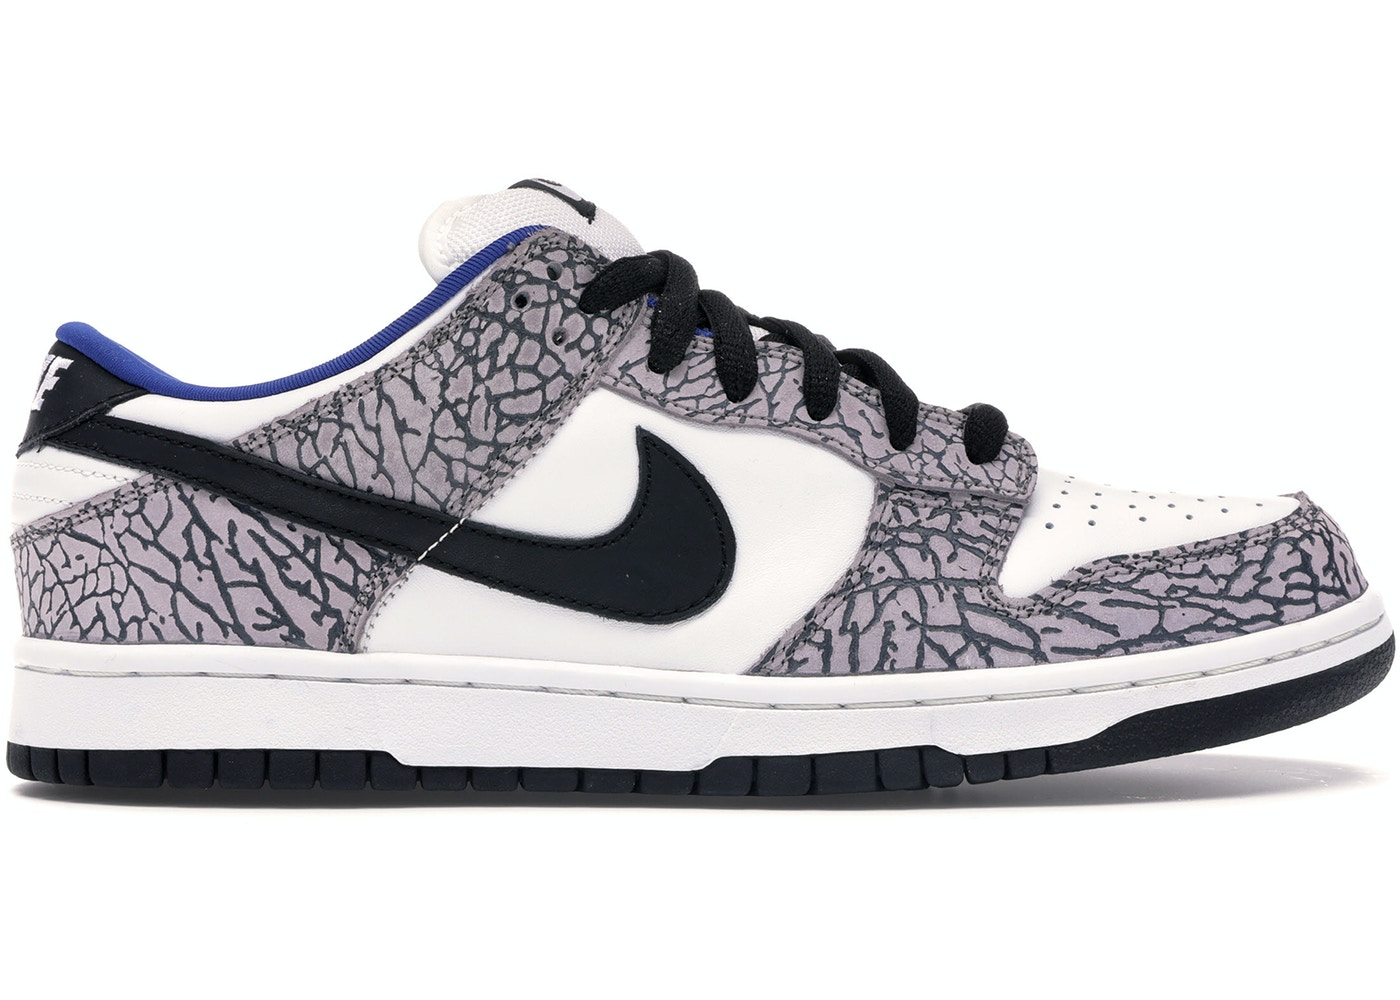 official photos fc67a 1f9bb Buy Nike SB Shoes & Deadstock Sneakers